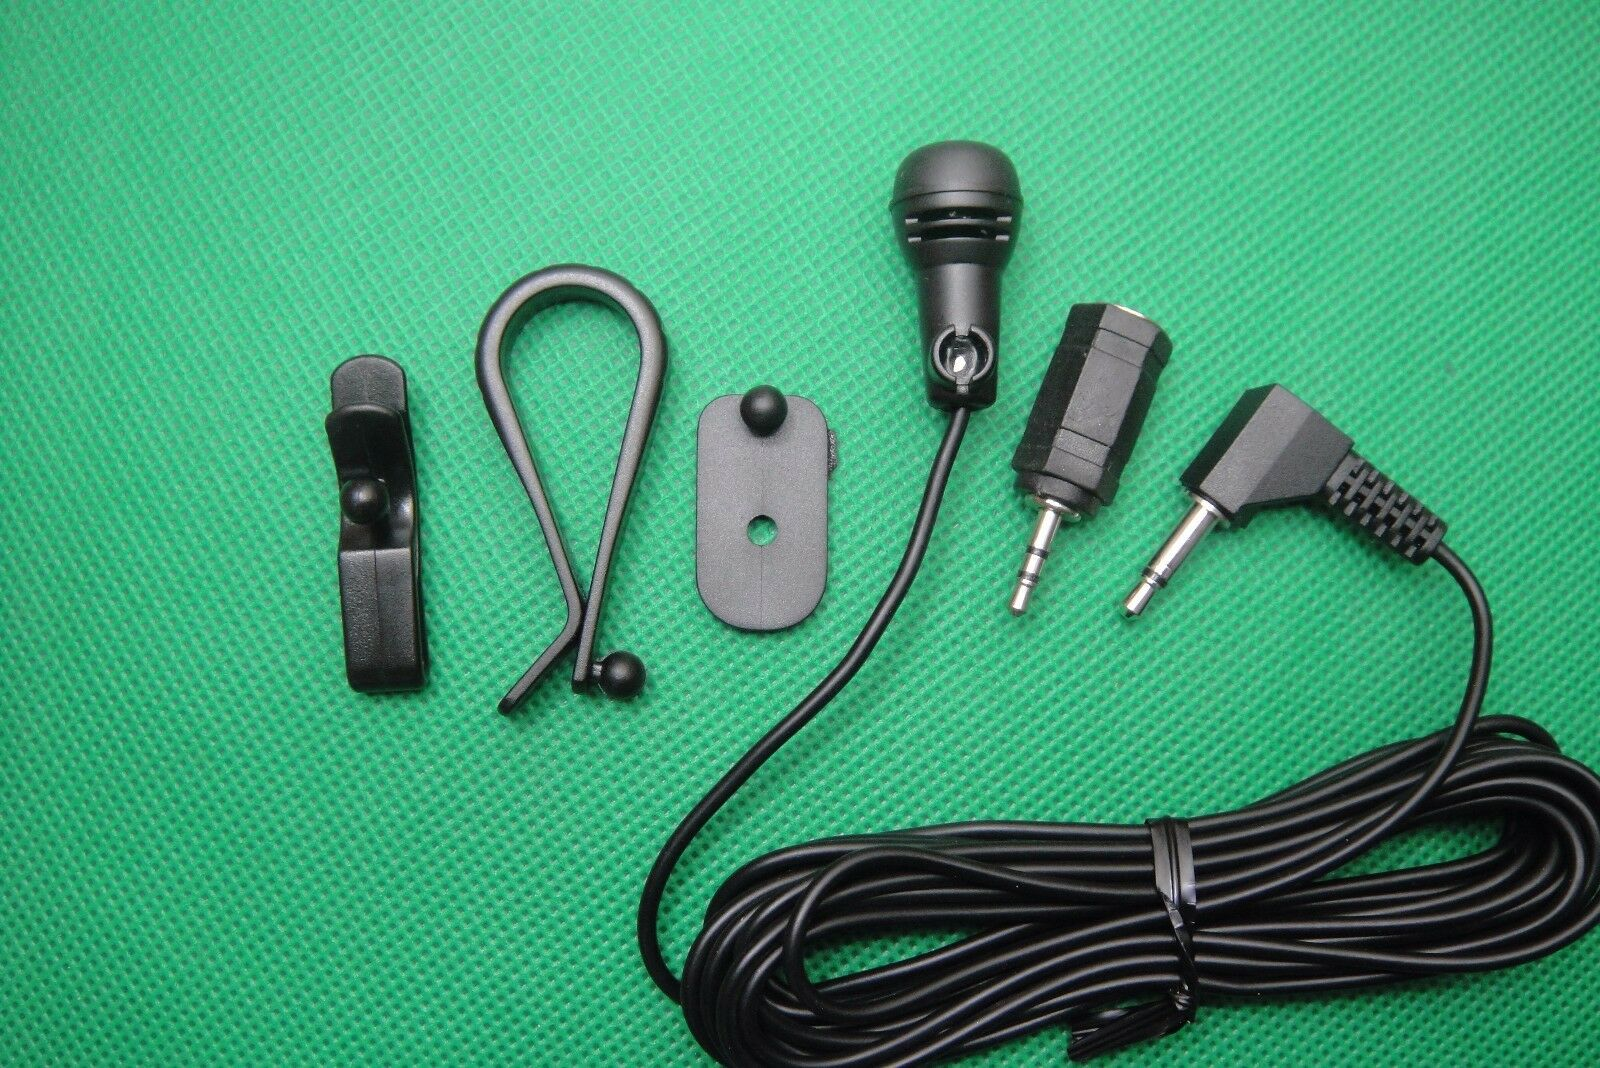 OFFICIAL PARROT MIC Microphone Ck3200 ck3200 LS CK3200LS with 3 ...